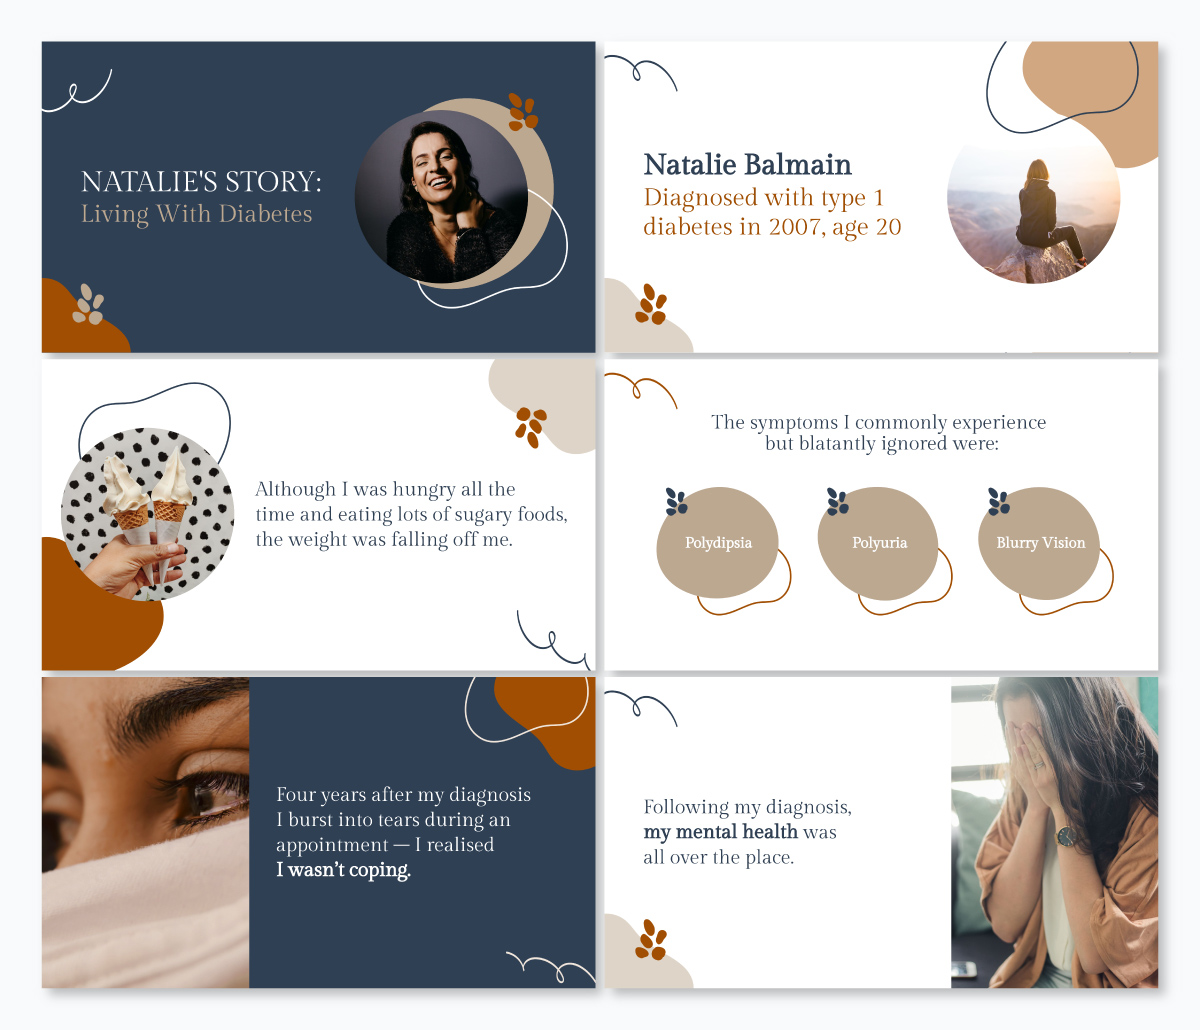 A life story keynote template available in Visme.